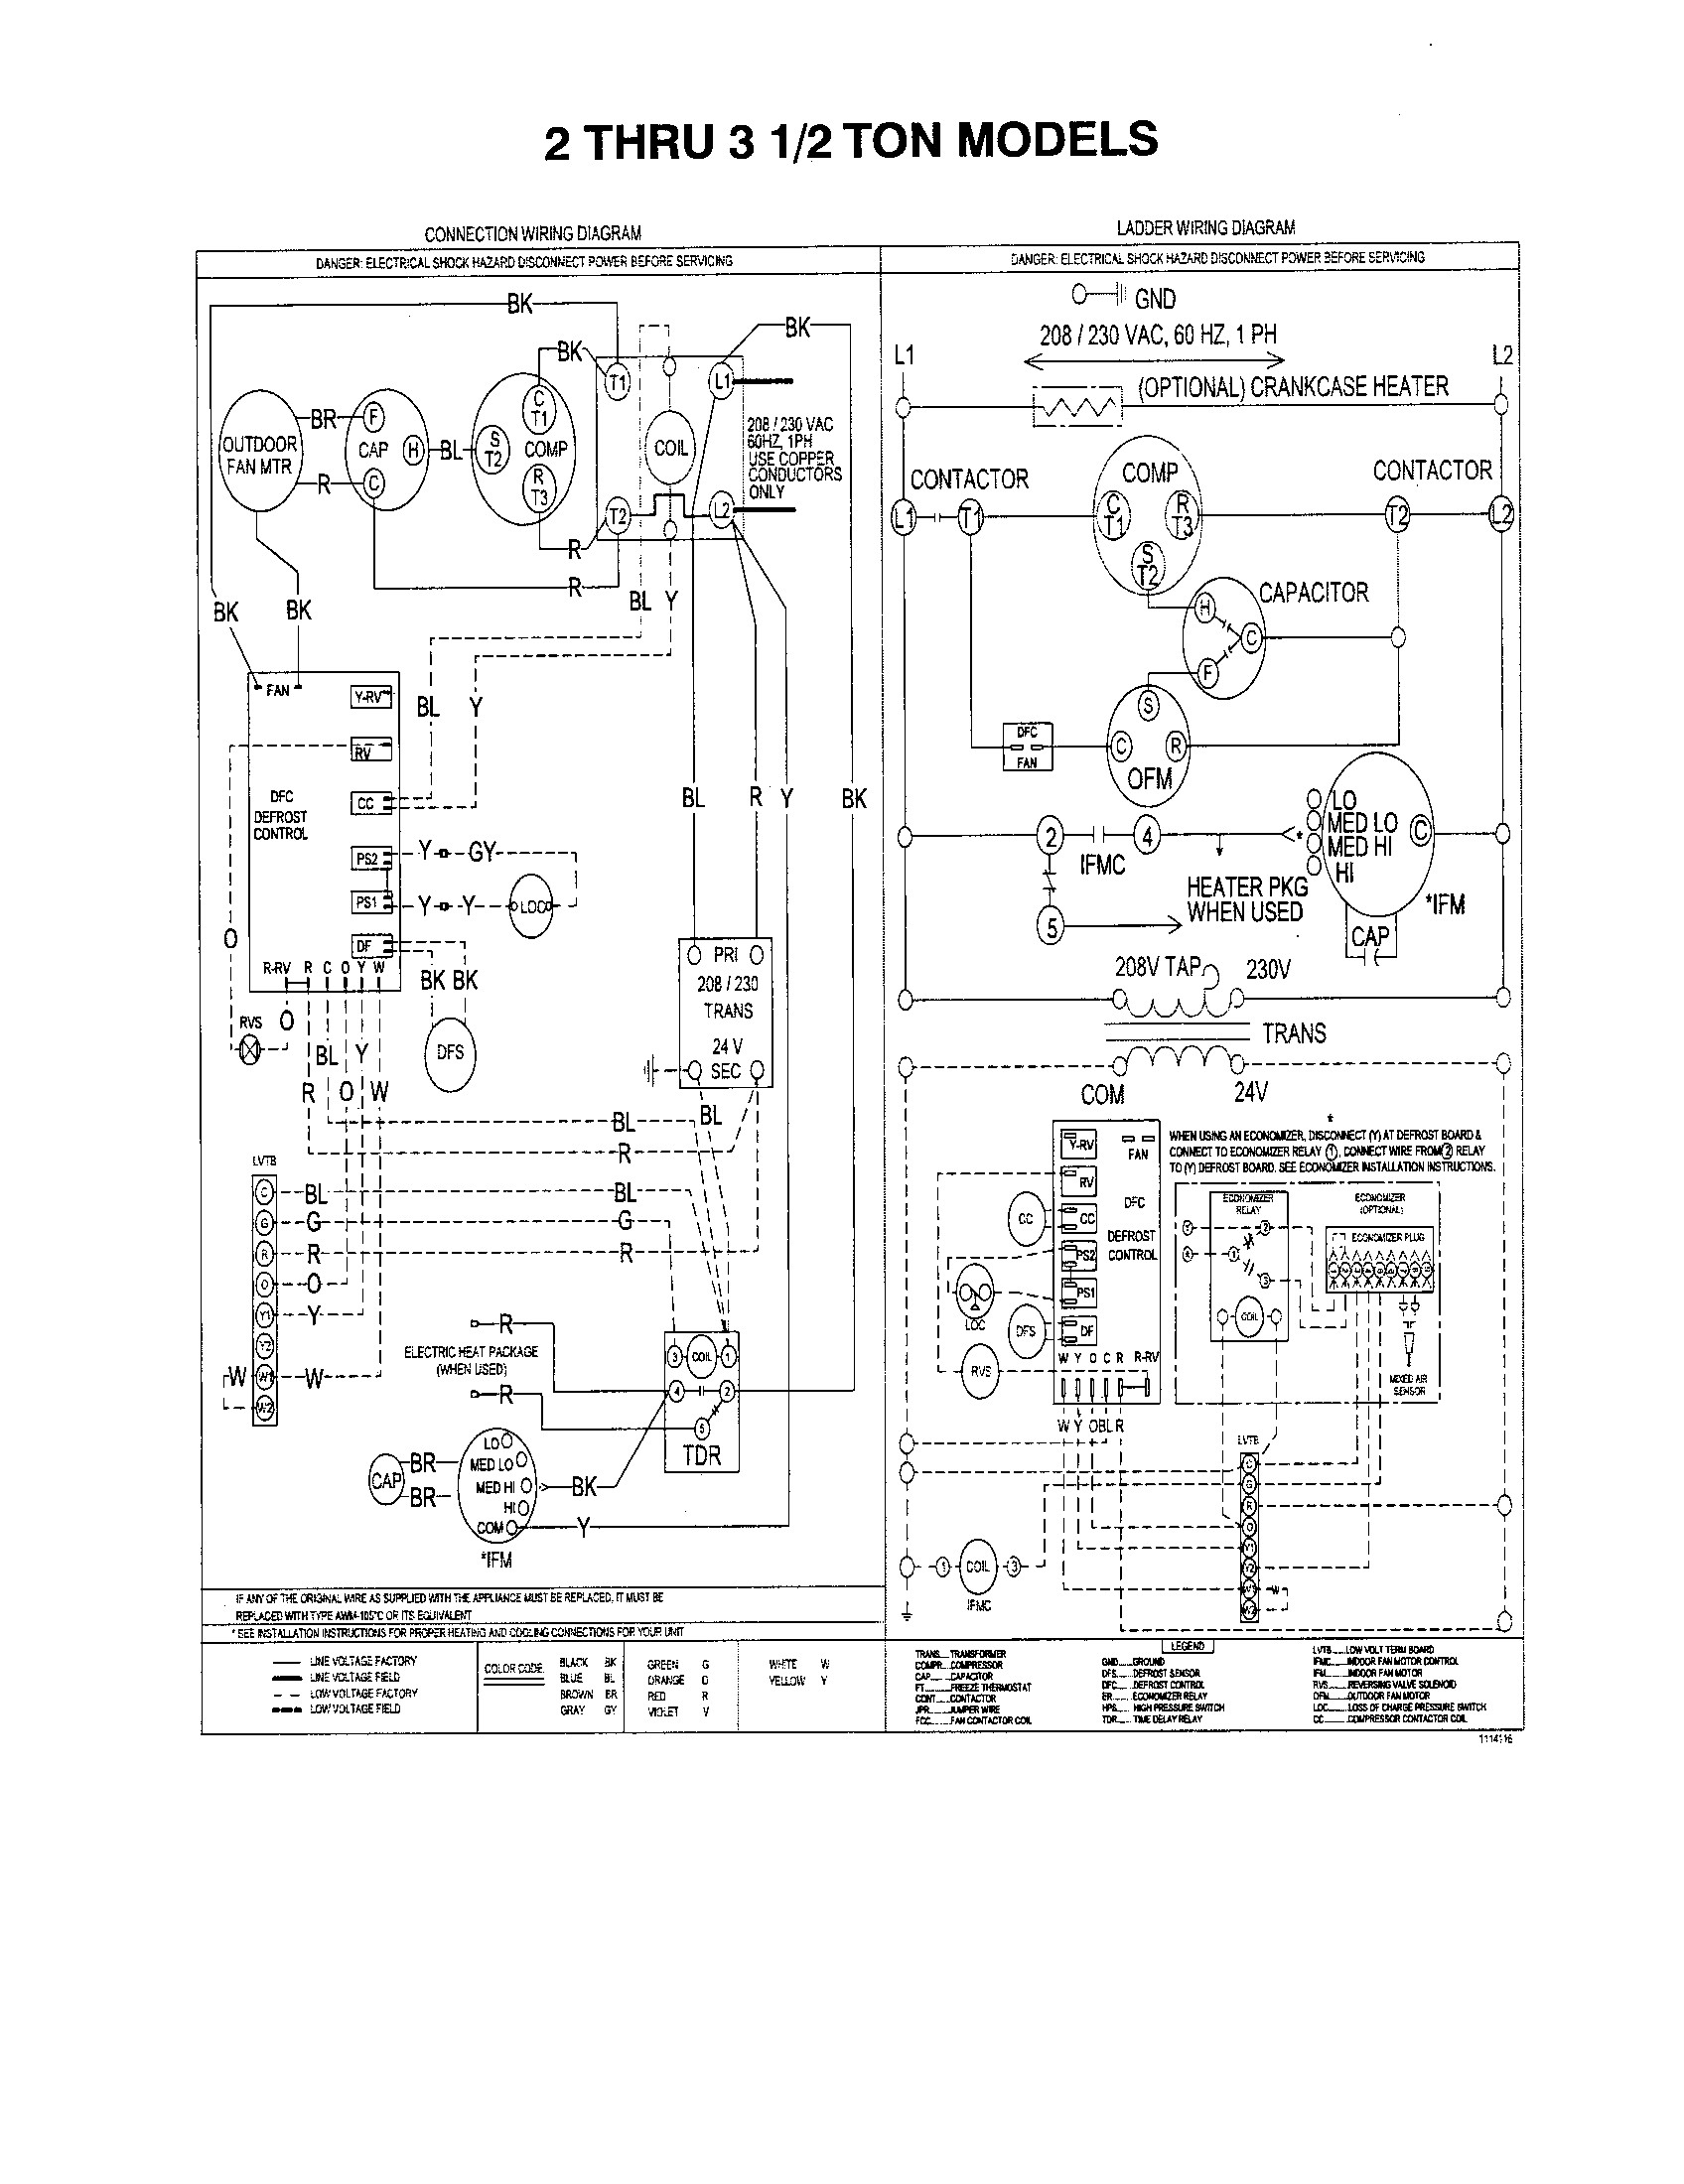 York Wiring Diagram | Wiring Diagram on